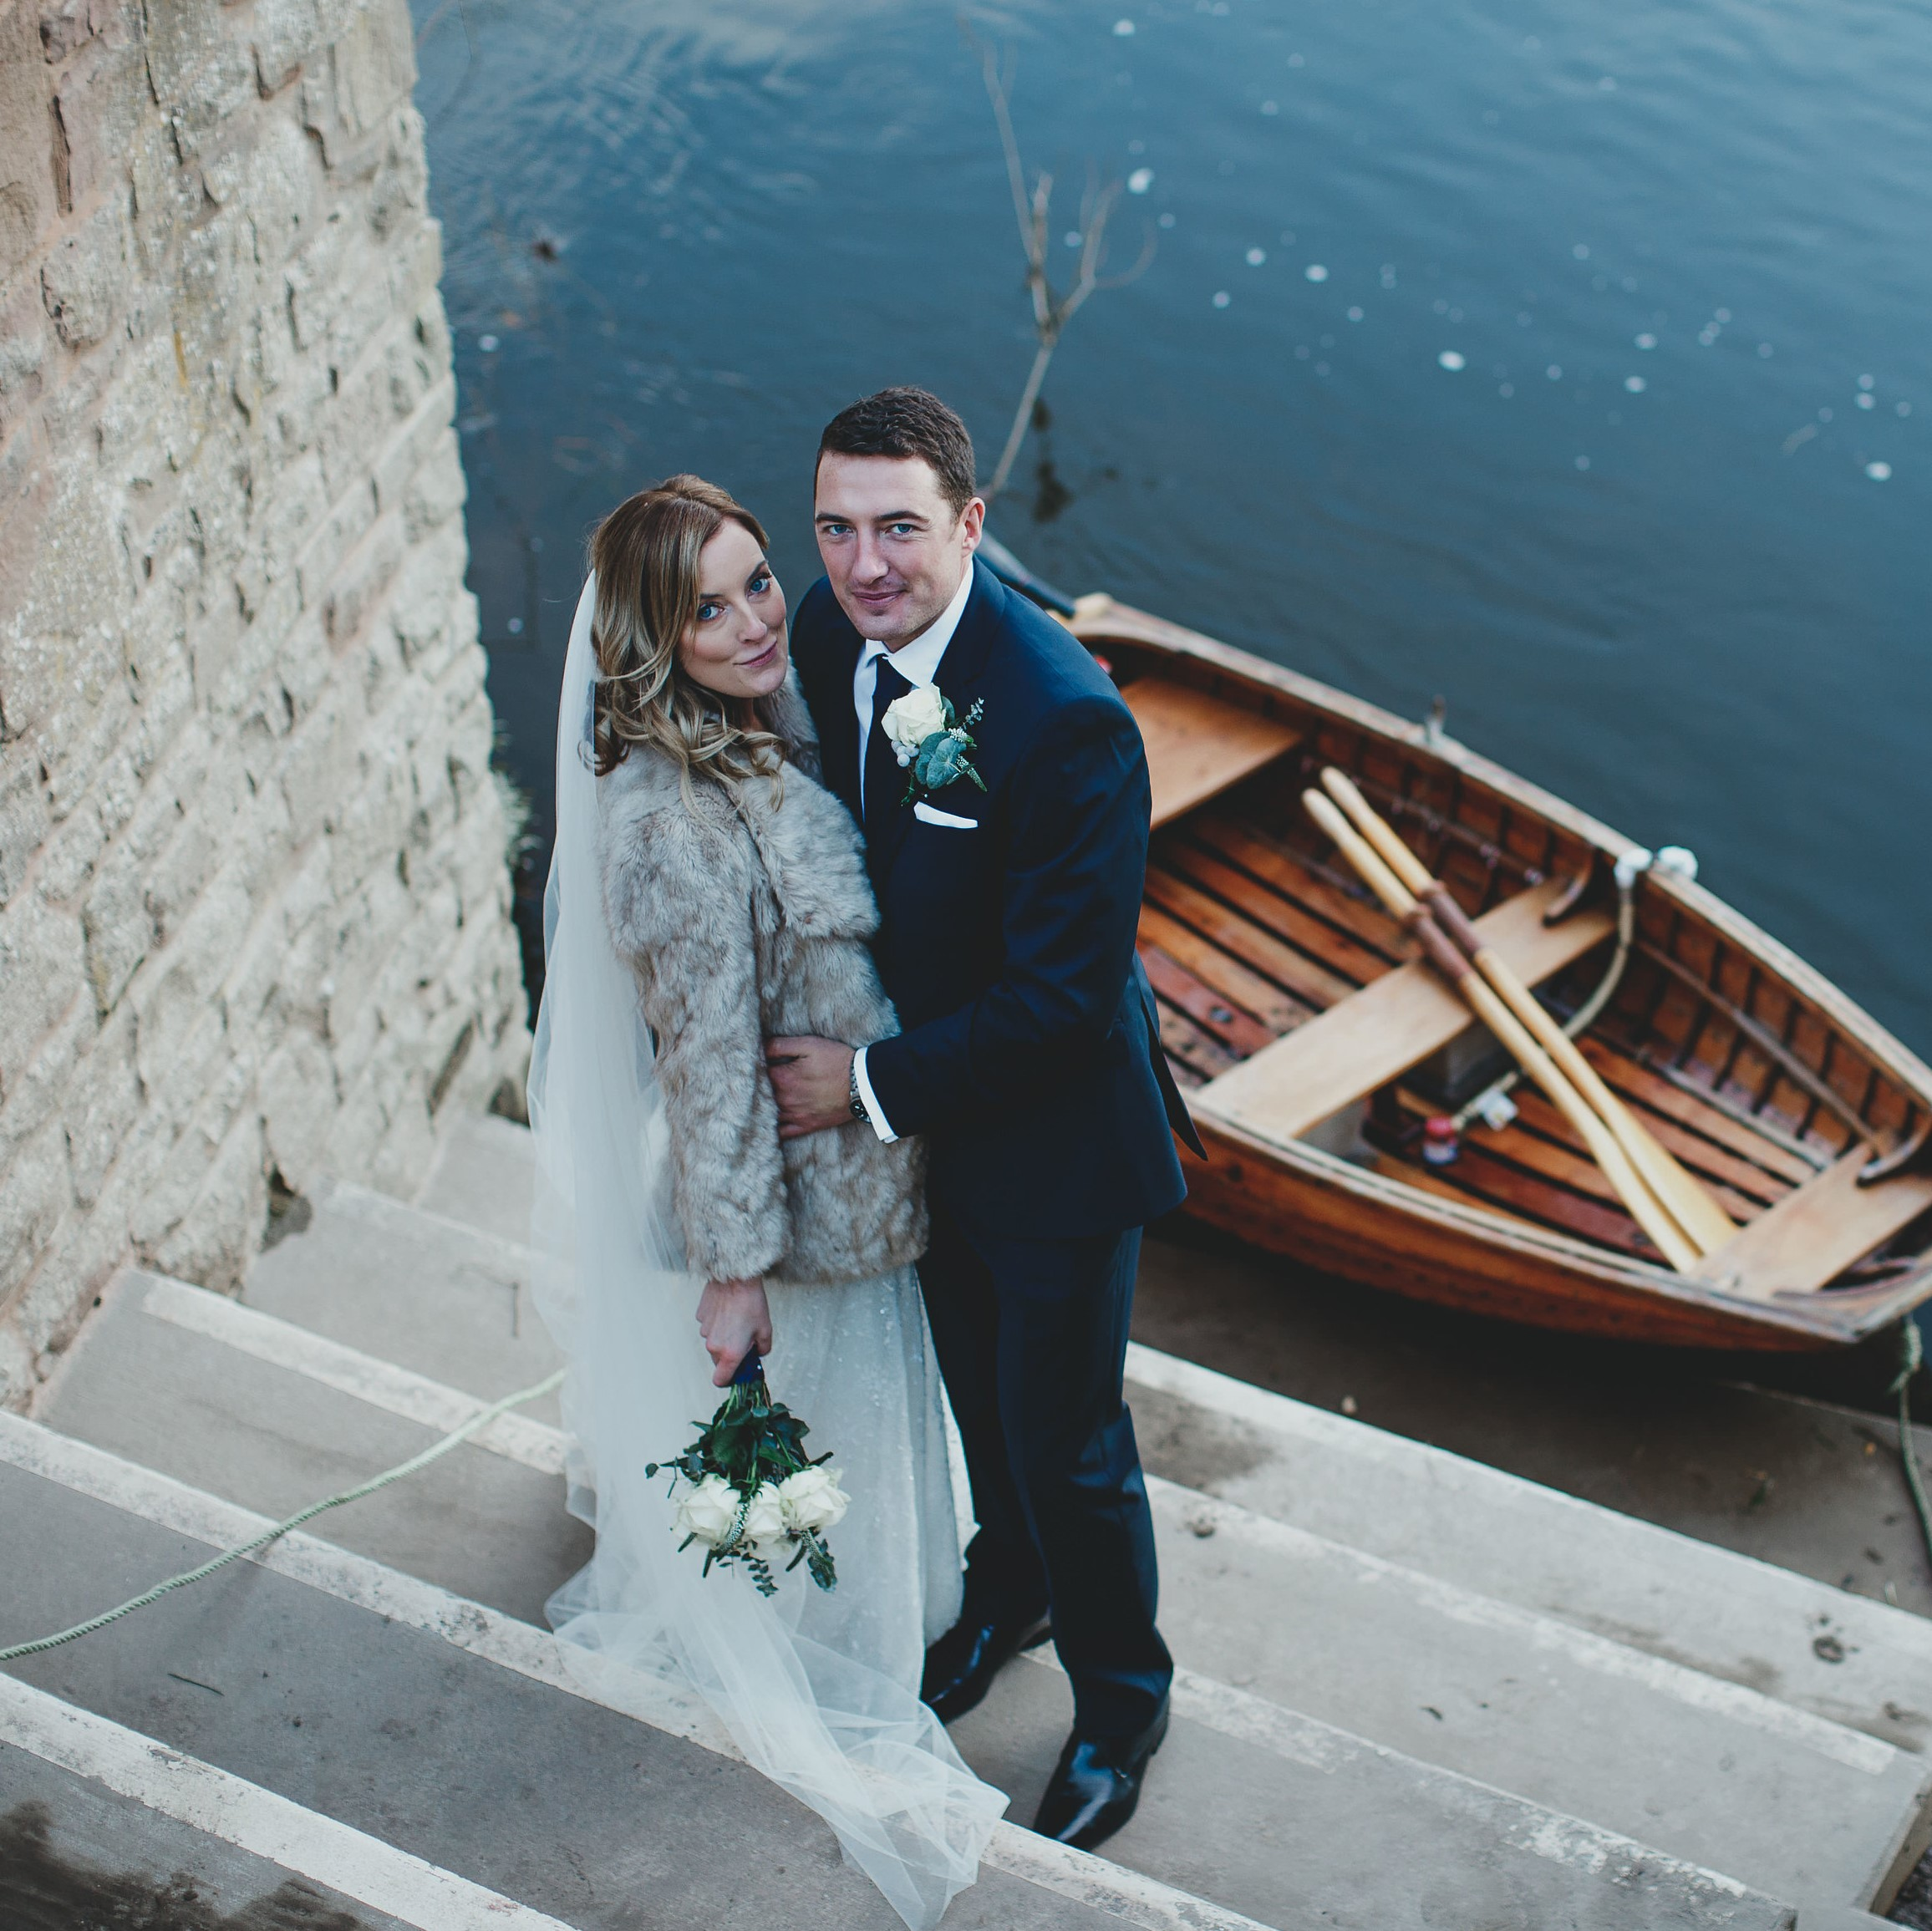 Making the most of the river - Getting married at The Left Bank Village